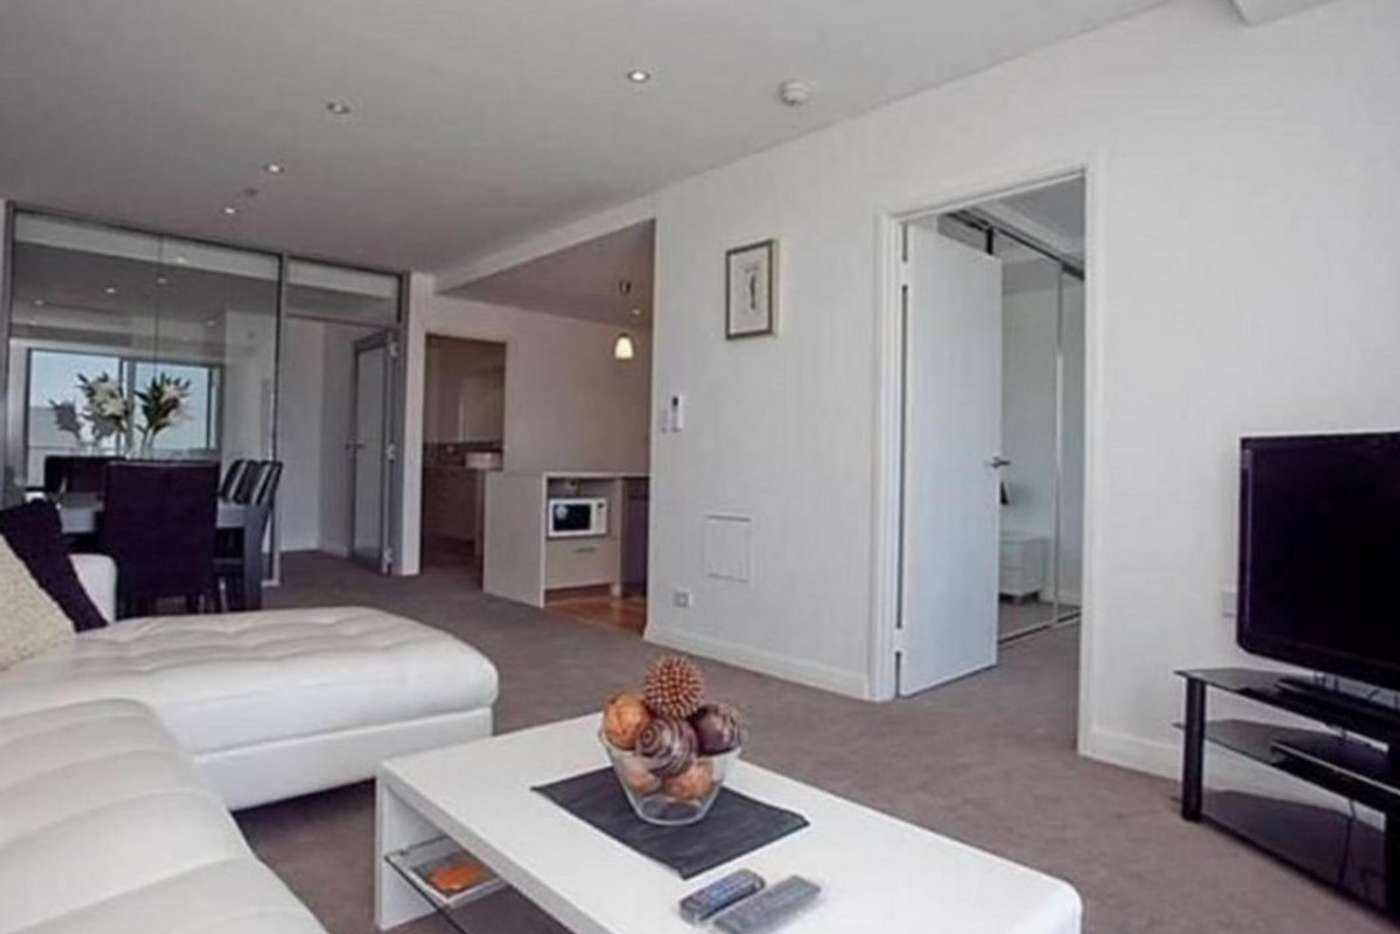 Main view of Homely apartment listing, 94/580 Hay Street, Perth WA 6000